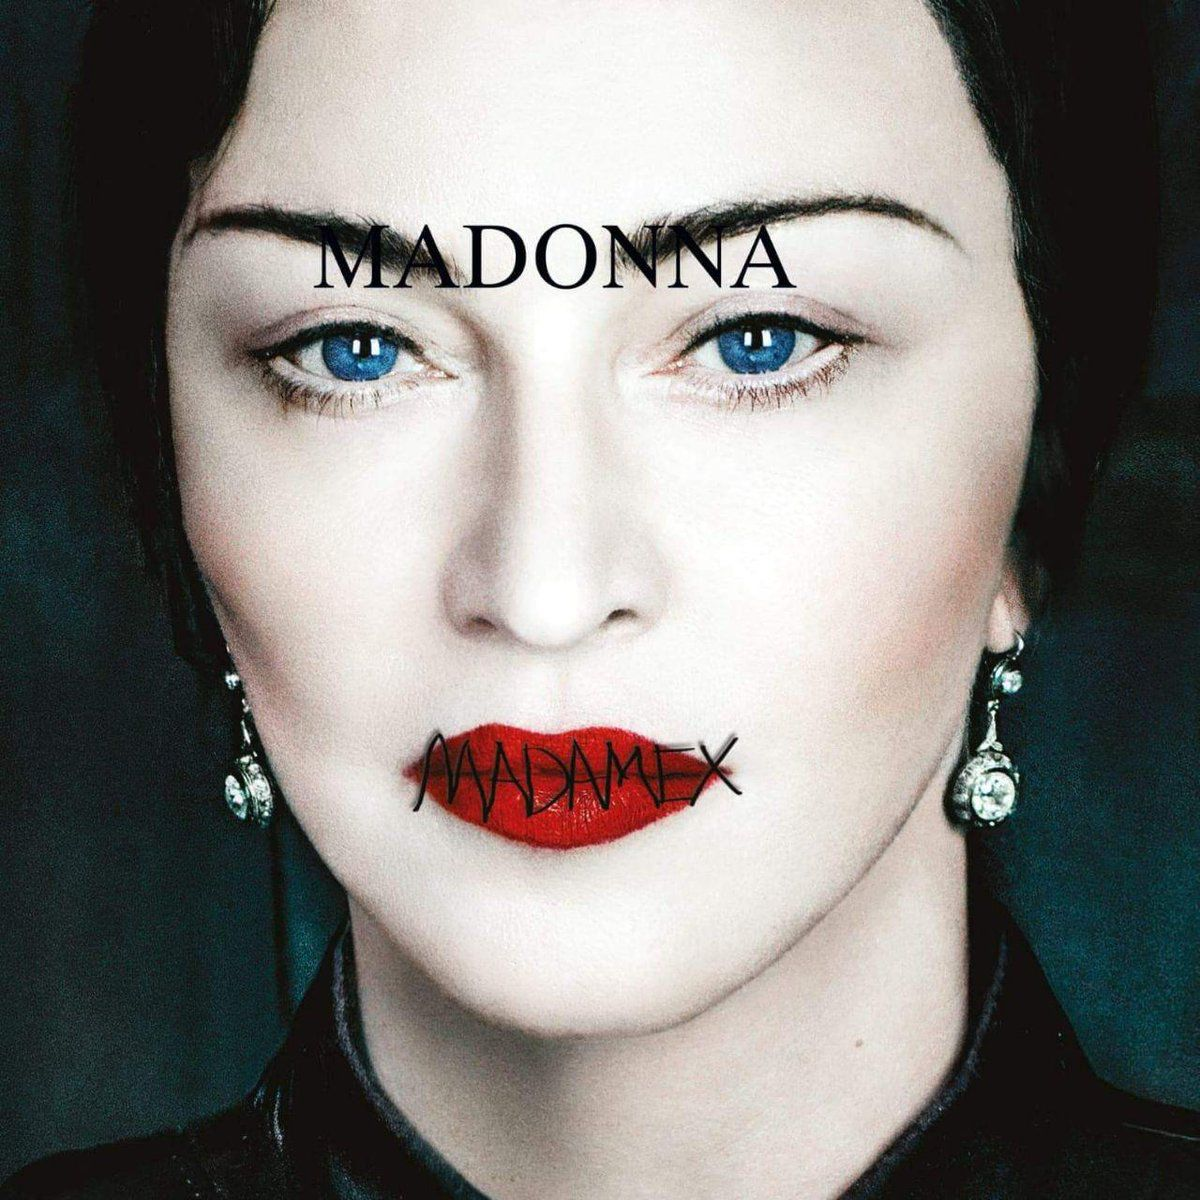 Madonna - Madame X album cover